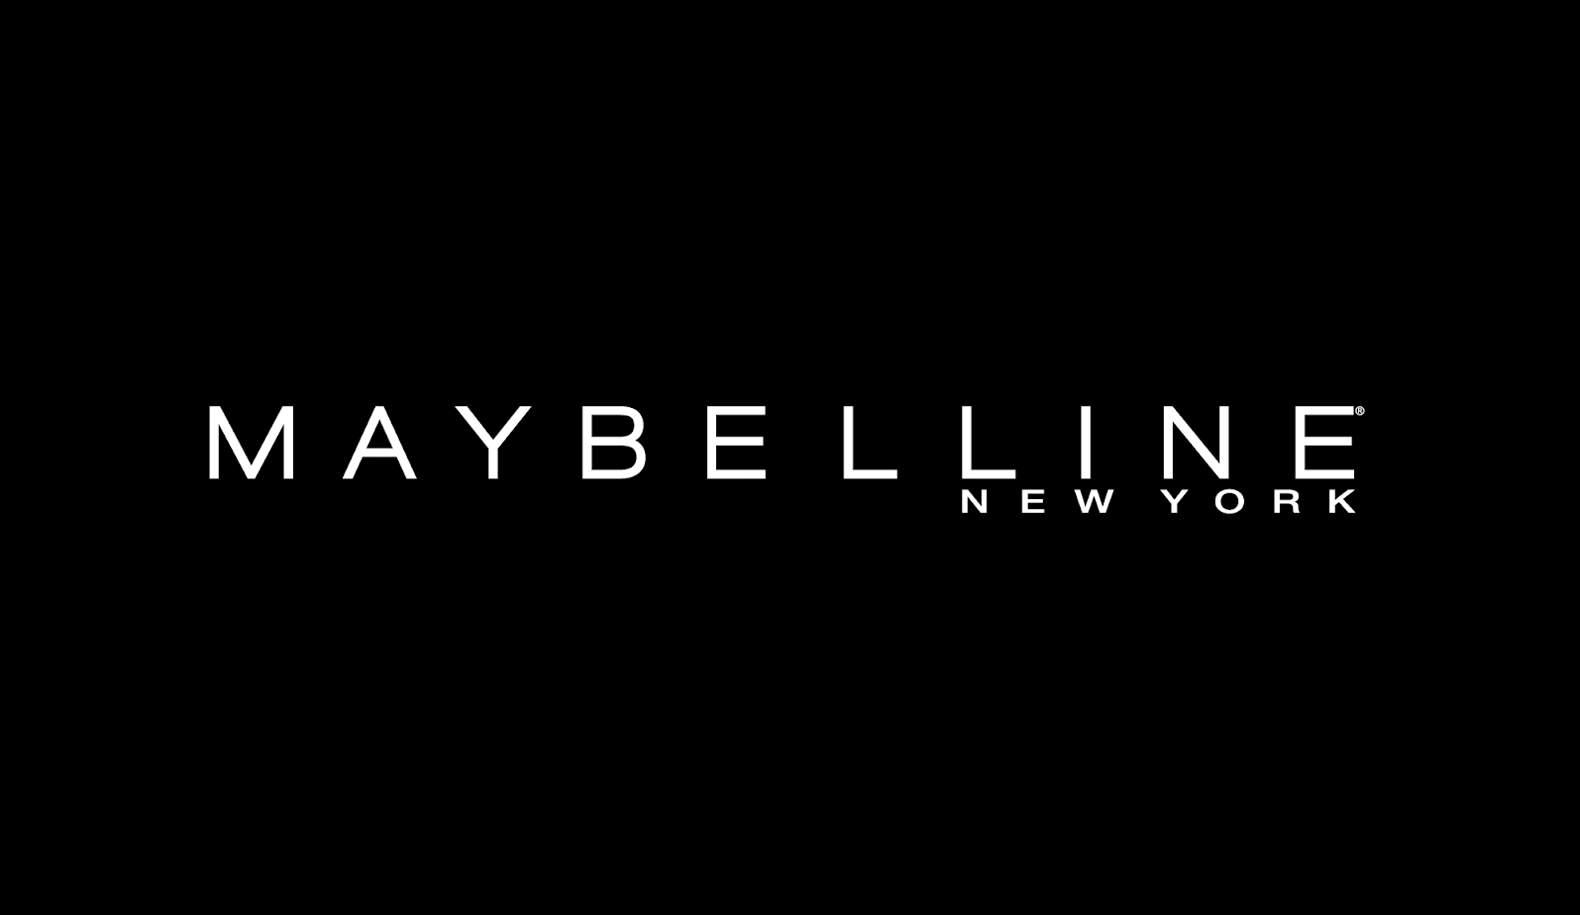 Maybelline New York video